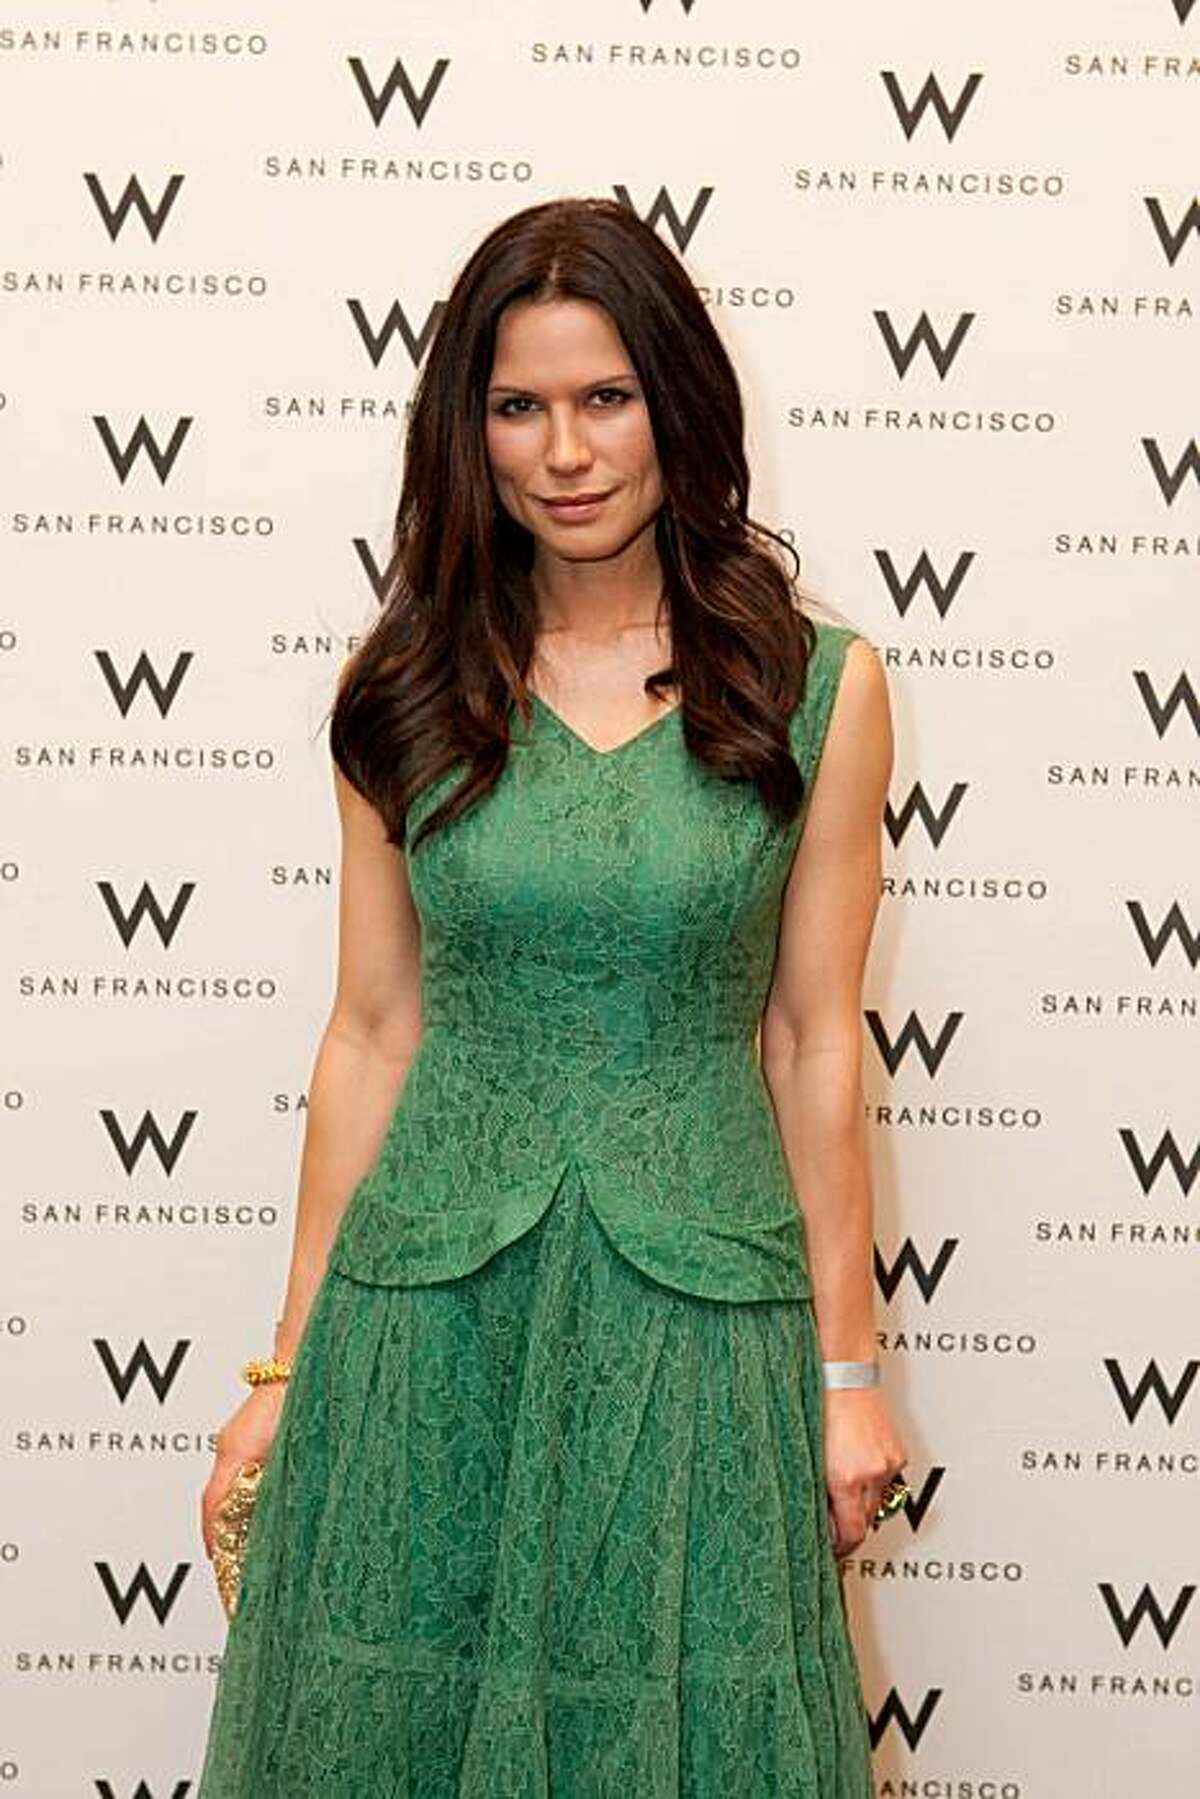 at the Global Green 6th Annual San Francisco Benefit and Eco-Fashion Show, held at the Bently Reserve on Dec. 13, 2010.